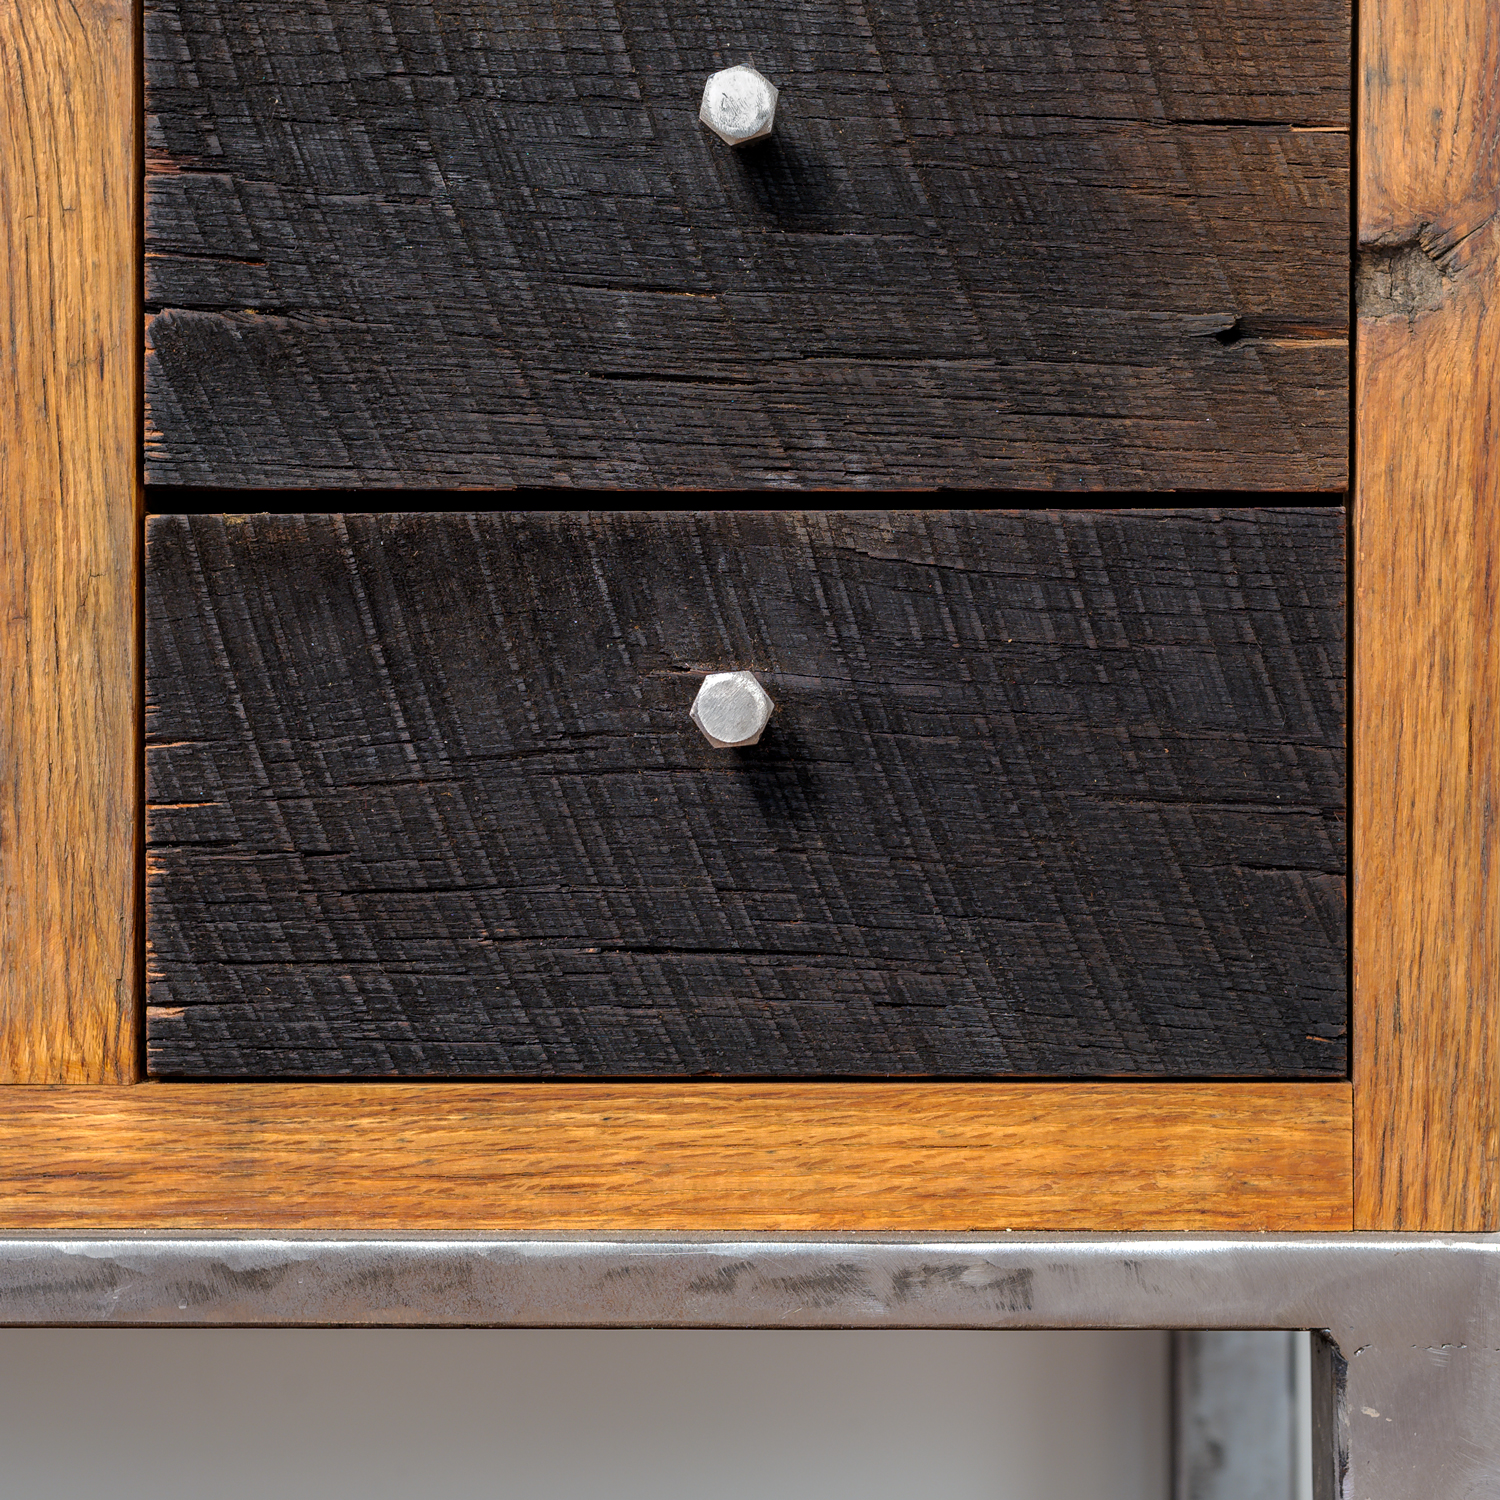 Table_drawers_DETAIL01